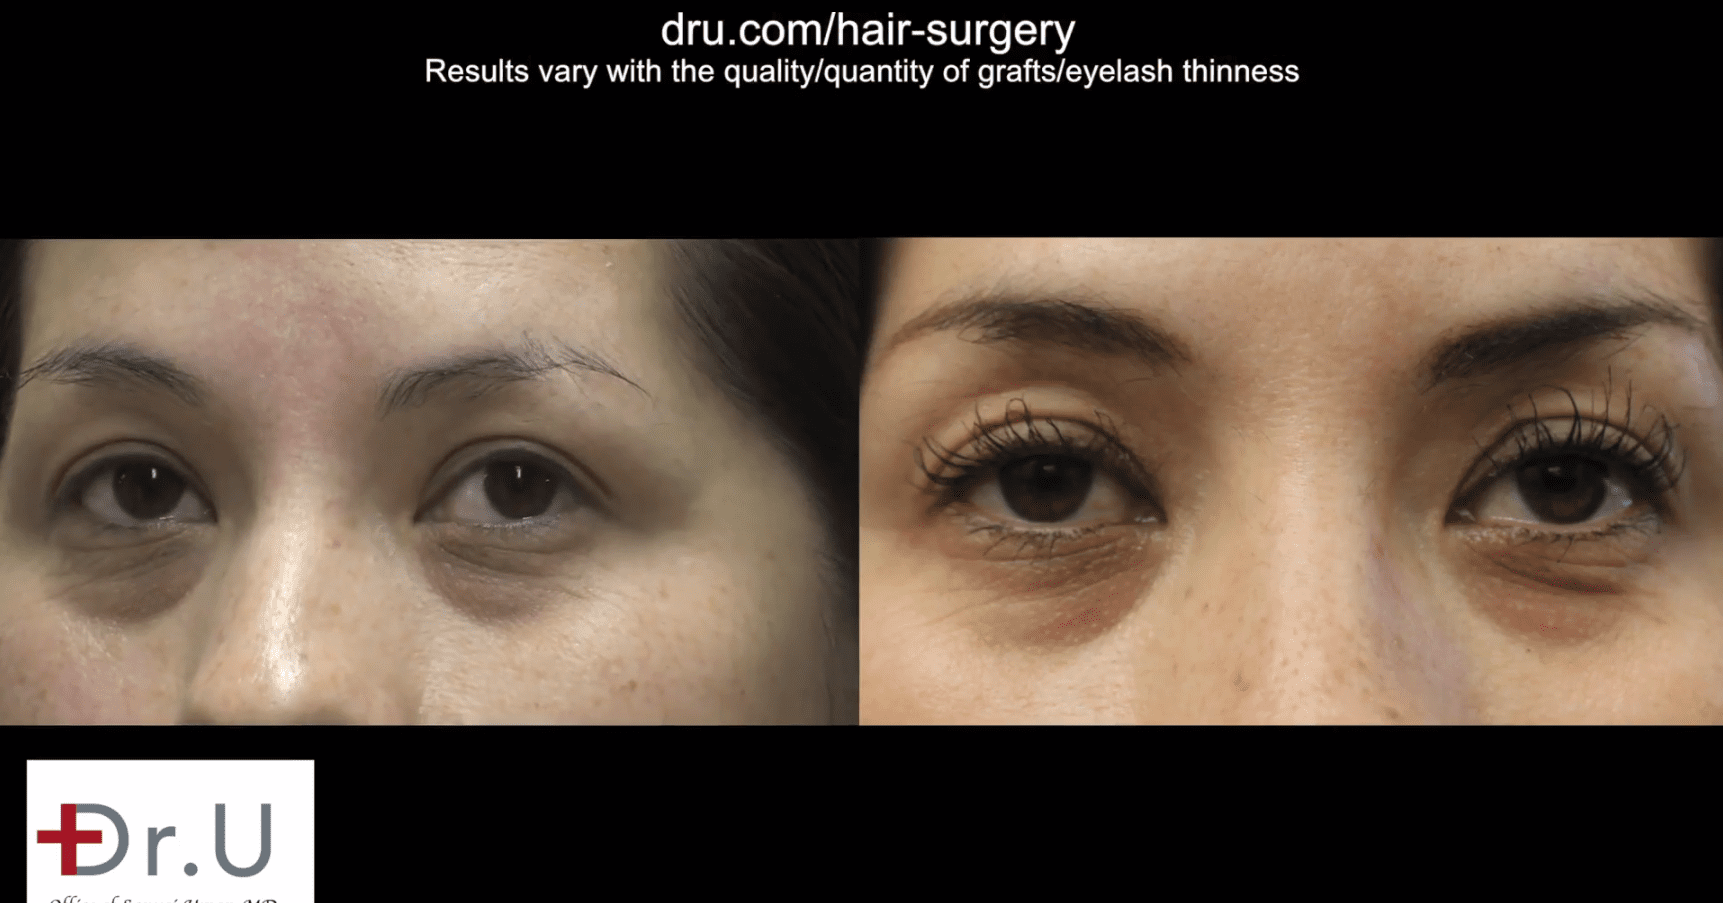 This patient got longer thicker eyelashes after Dr.UGraft eyelash extension surgery